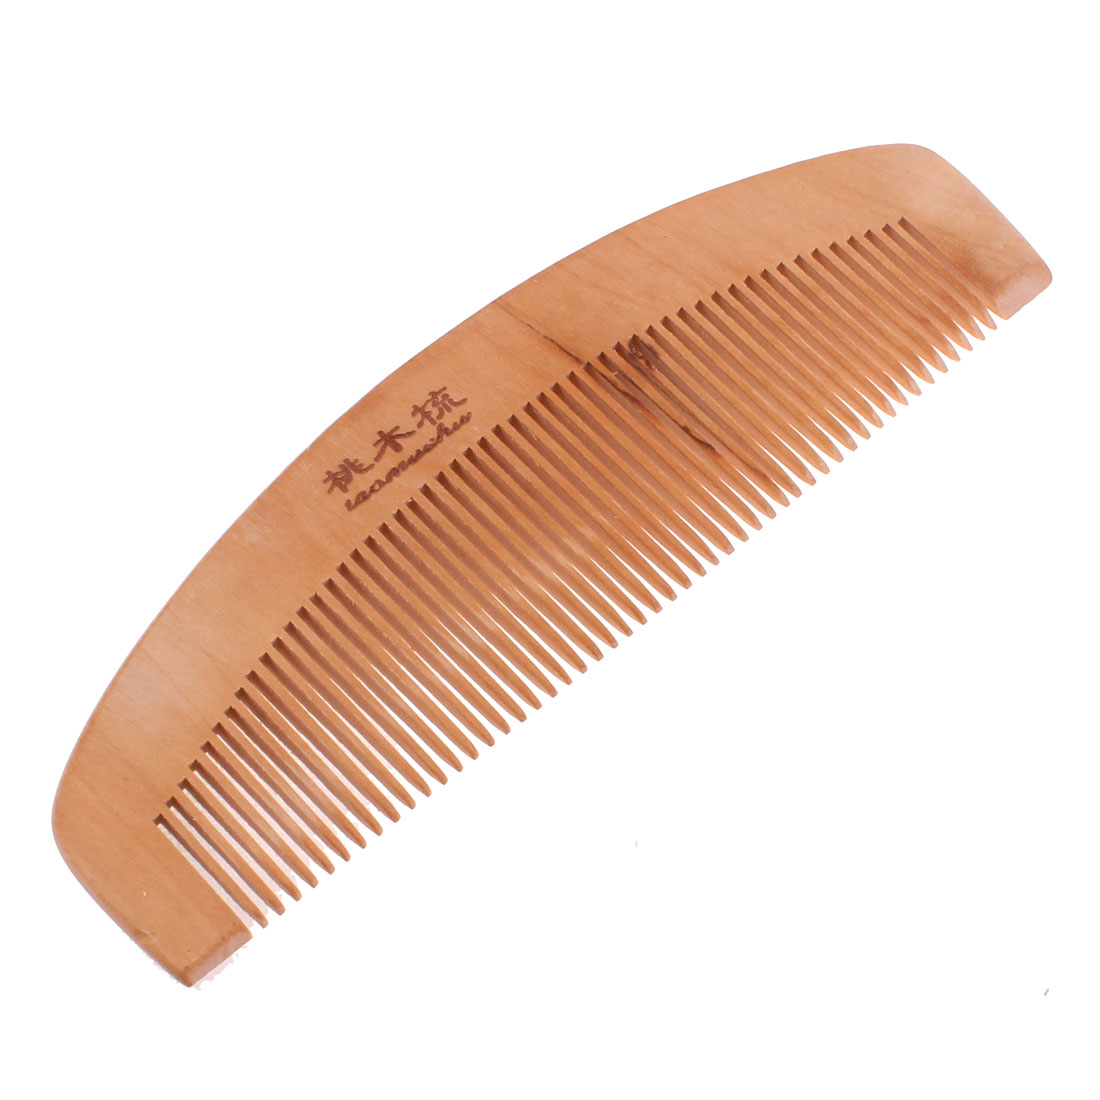 16cm Length 5cm Width Wooden Chinese Style Portable Hair Care Head Massage Comb